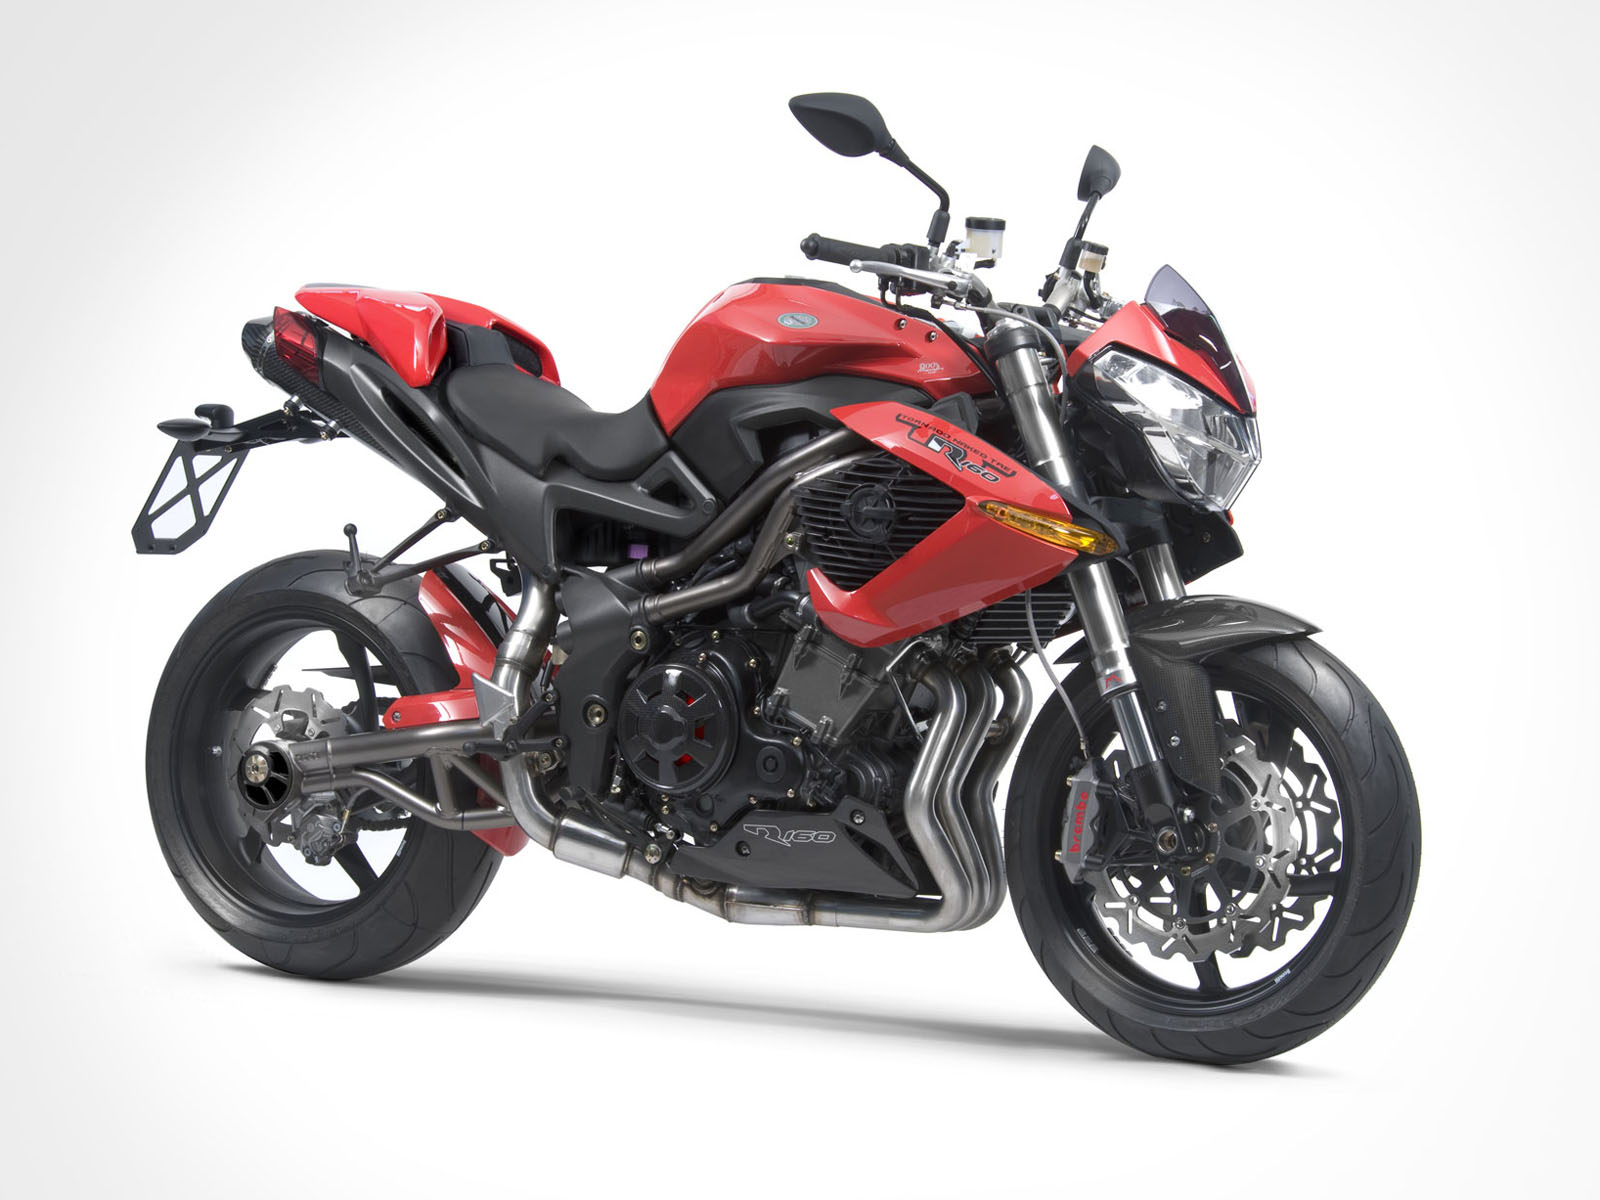 2011 Benelli Tnt R160 Red View